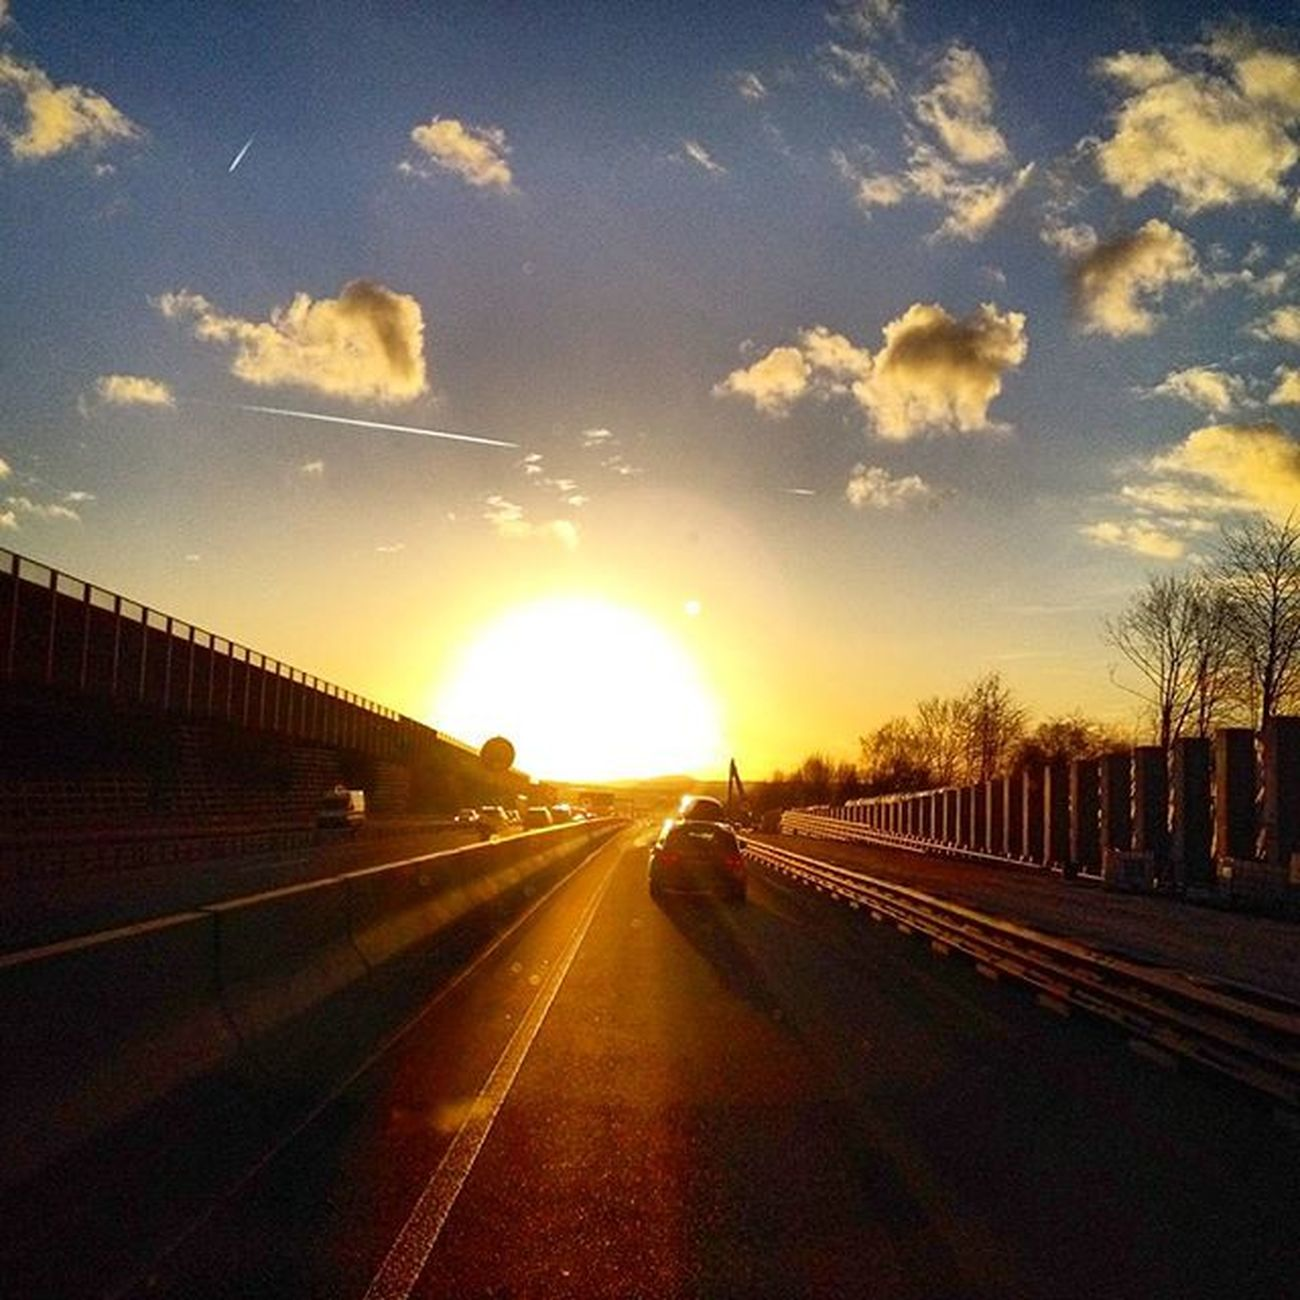 A7 Autobahn Highway Sun Sunset Photoarena_sunset Driving Drive Drivinghome Cloud Clouds Skyisburning Sky Heaven Roadtrip Road Street Heimfahrt